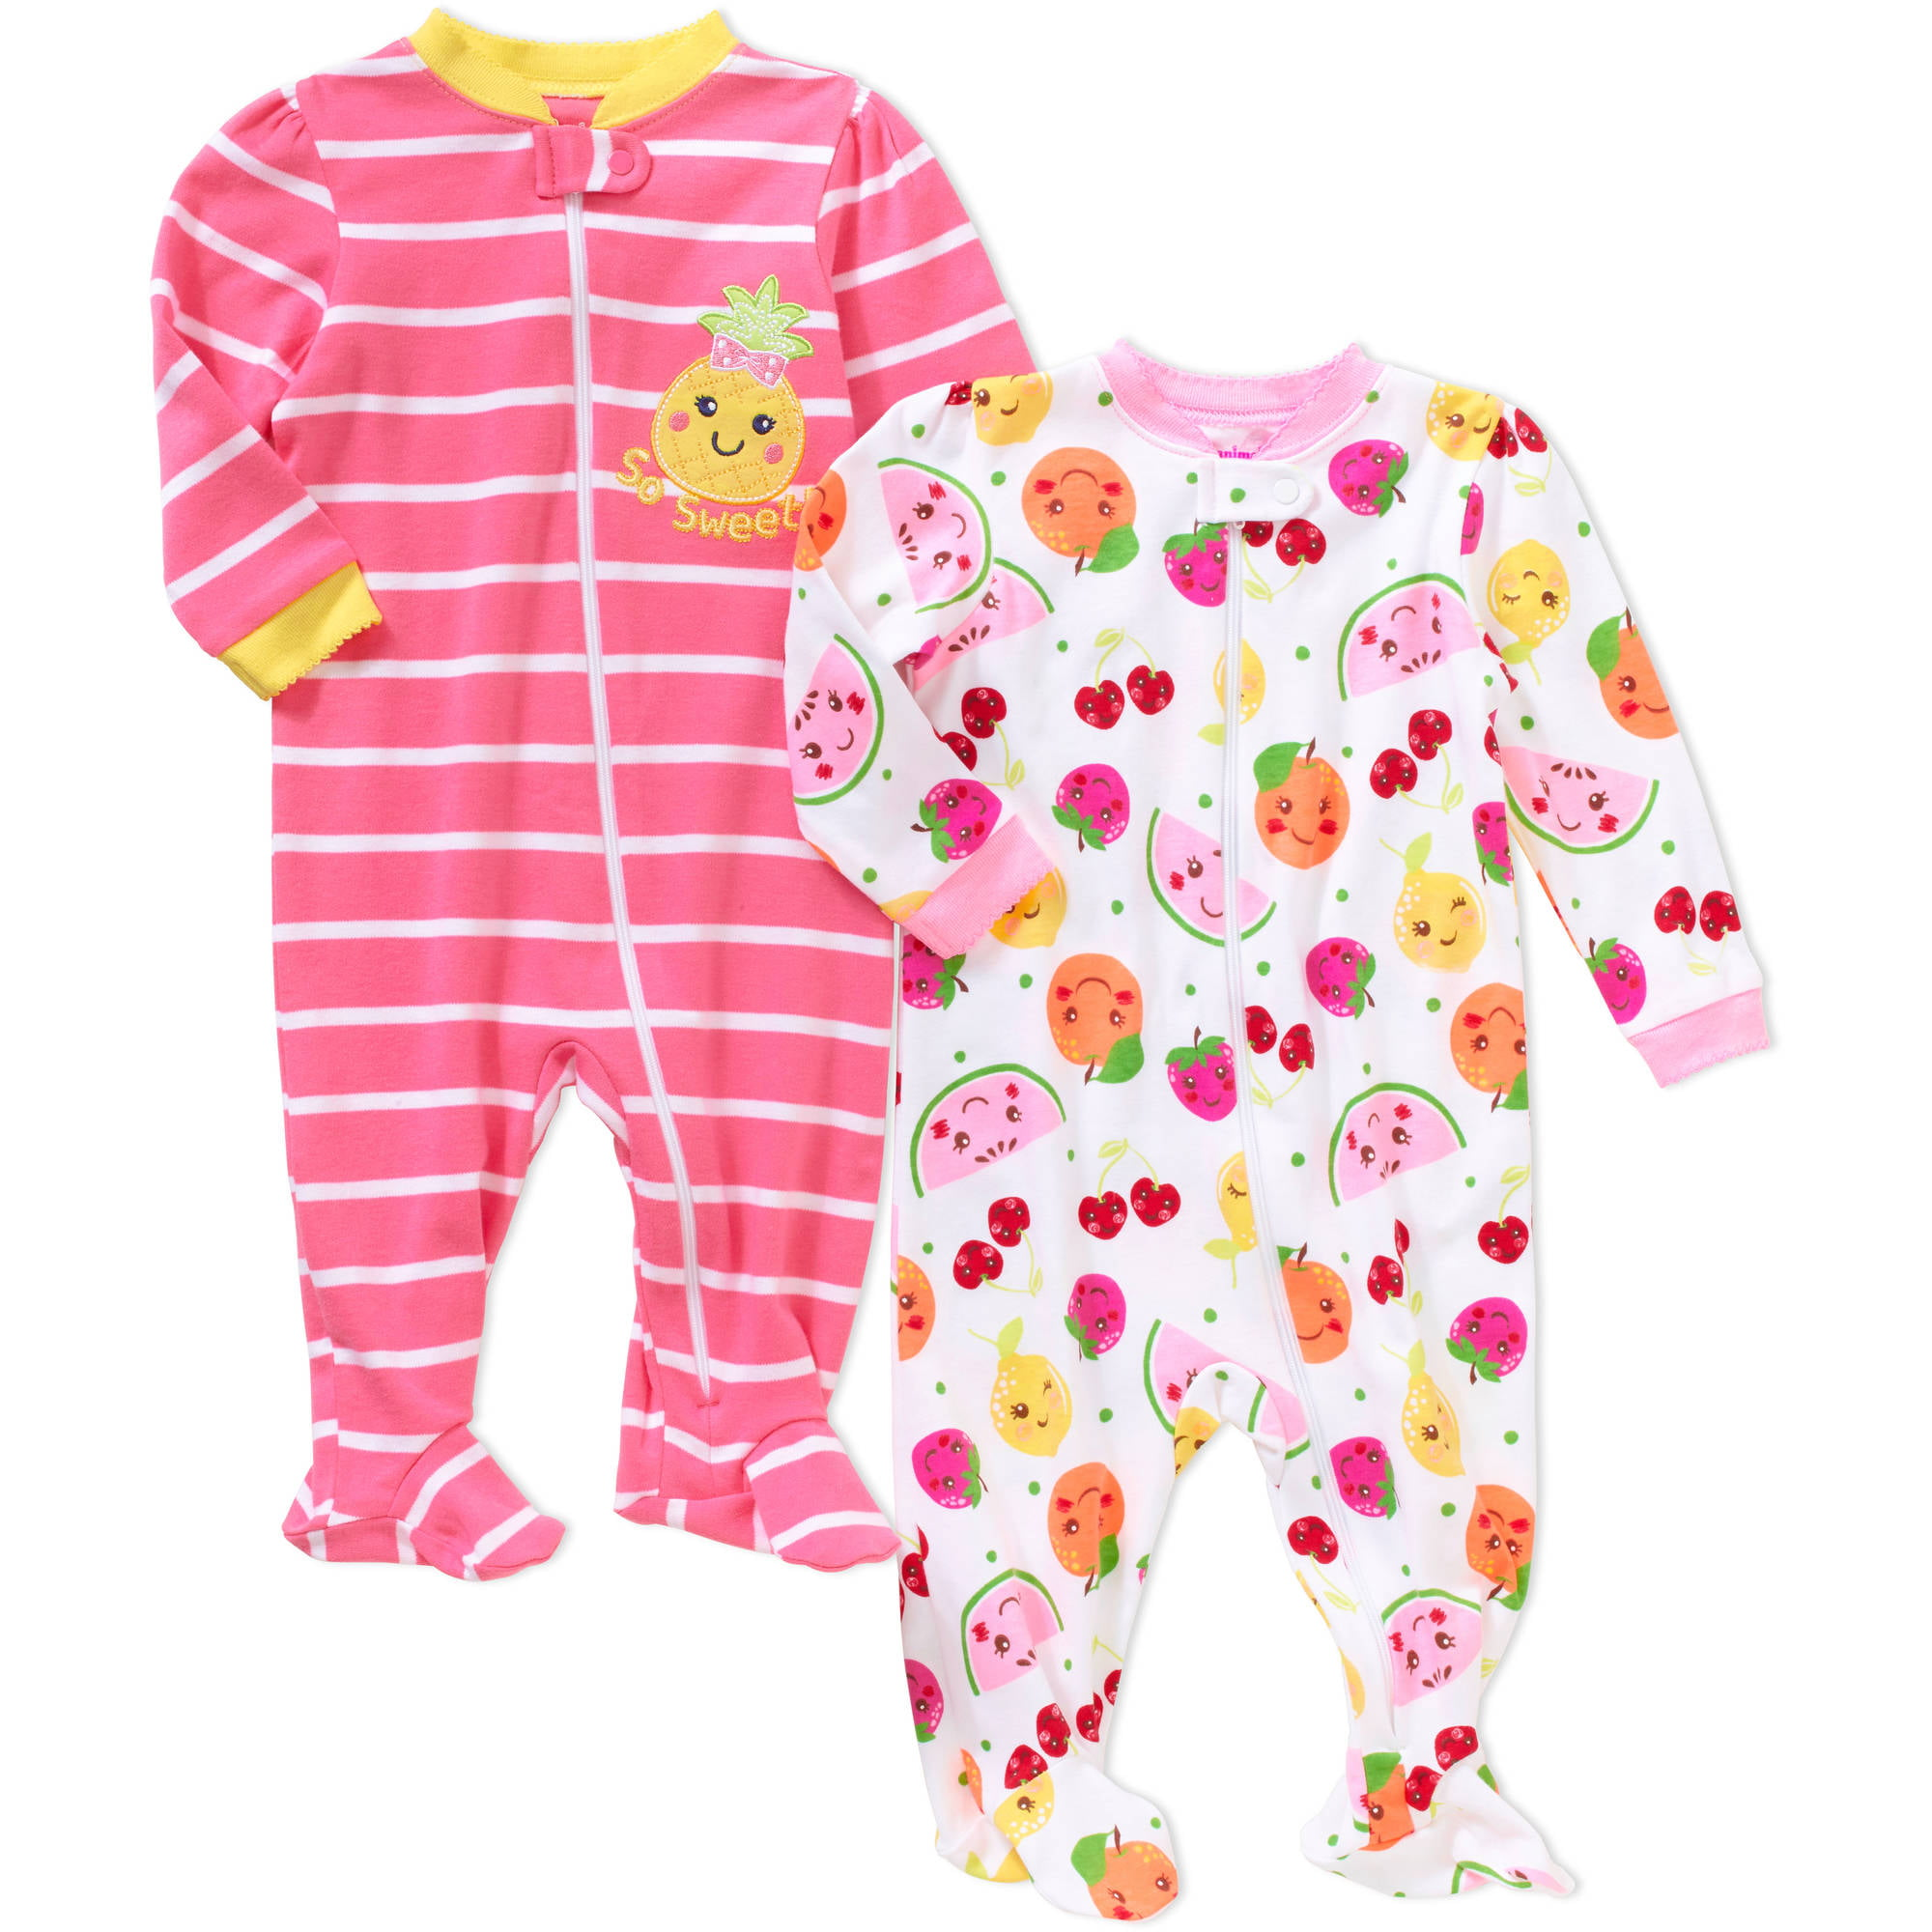 cd2c8b6ff Garanimals Baby   Toddler Sleepwear